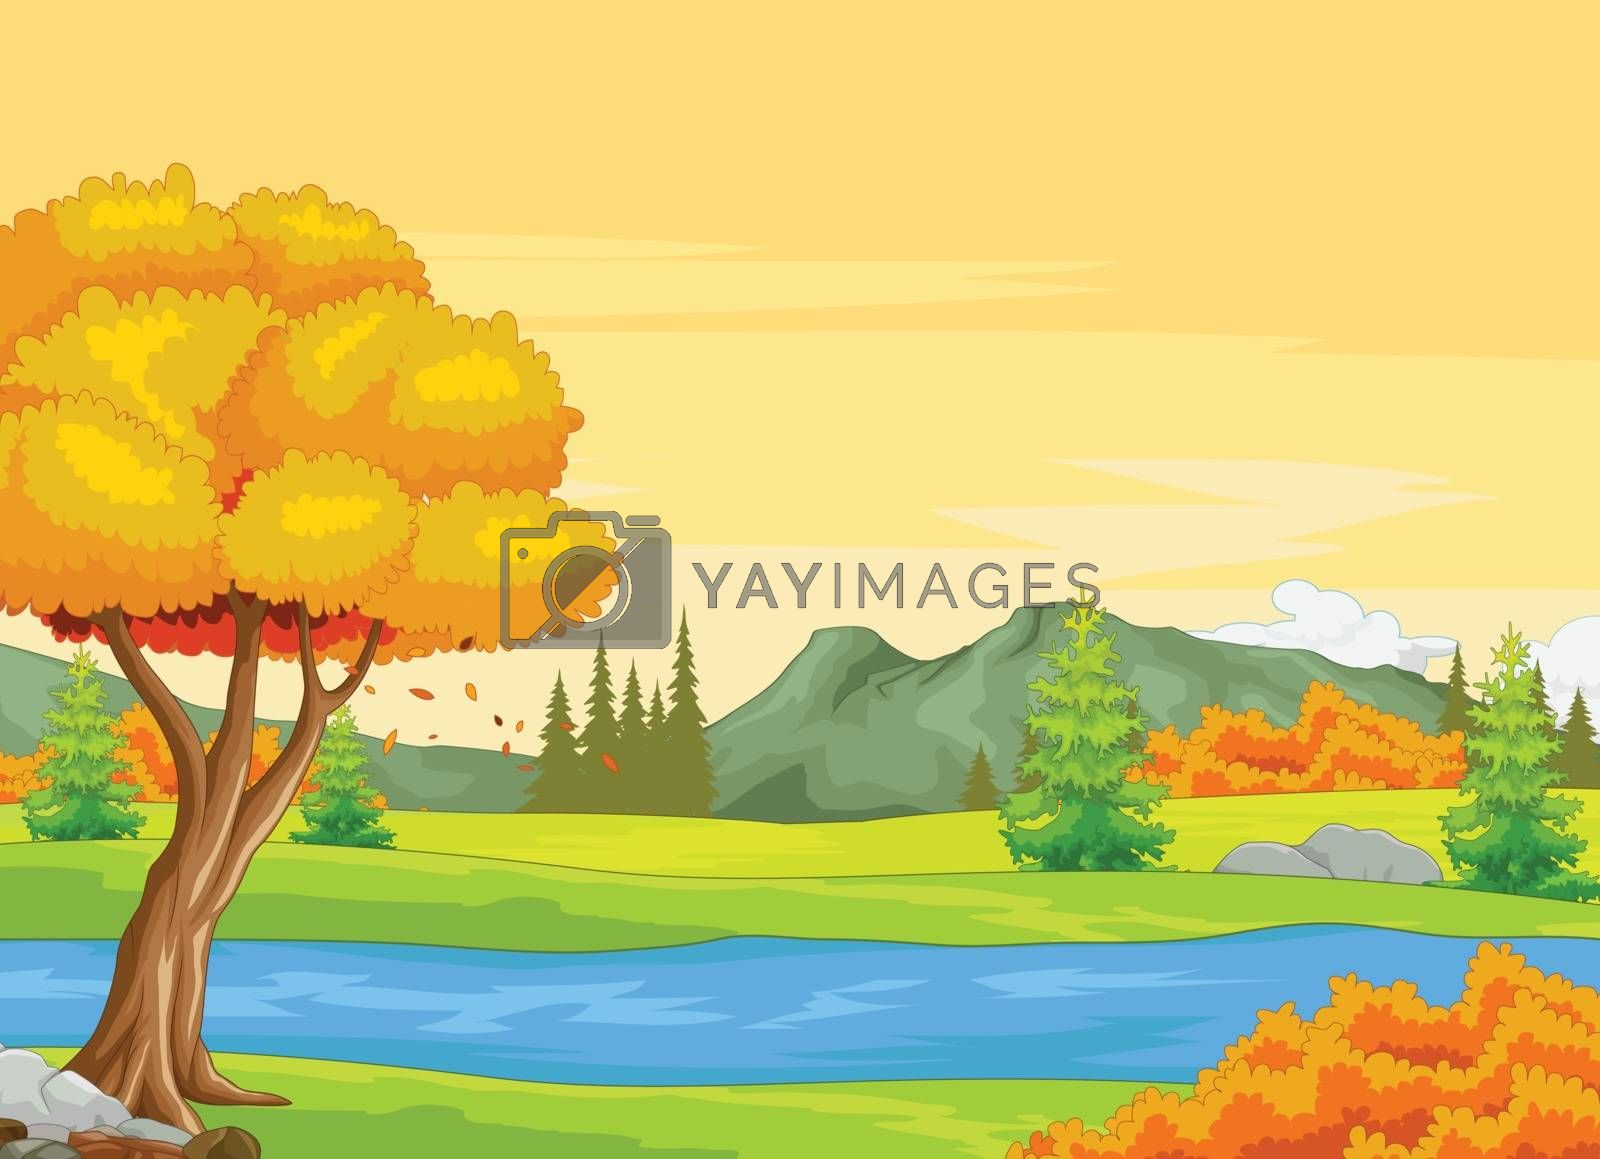 Royalty free image of River With Autumn Forest Background by sujono